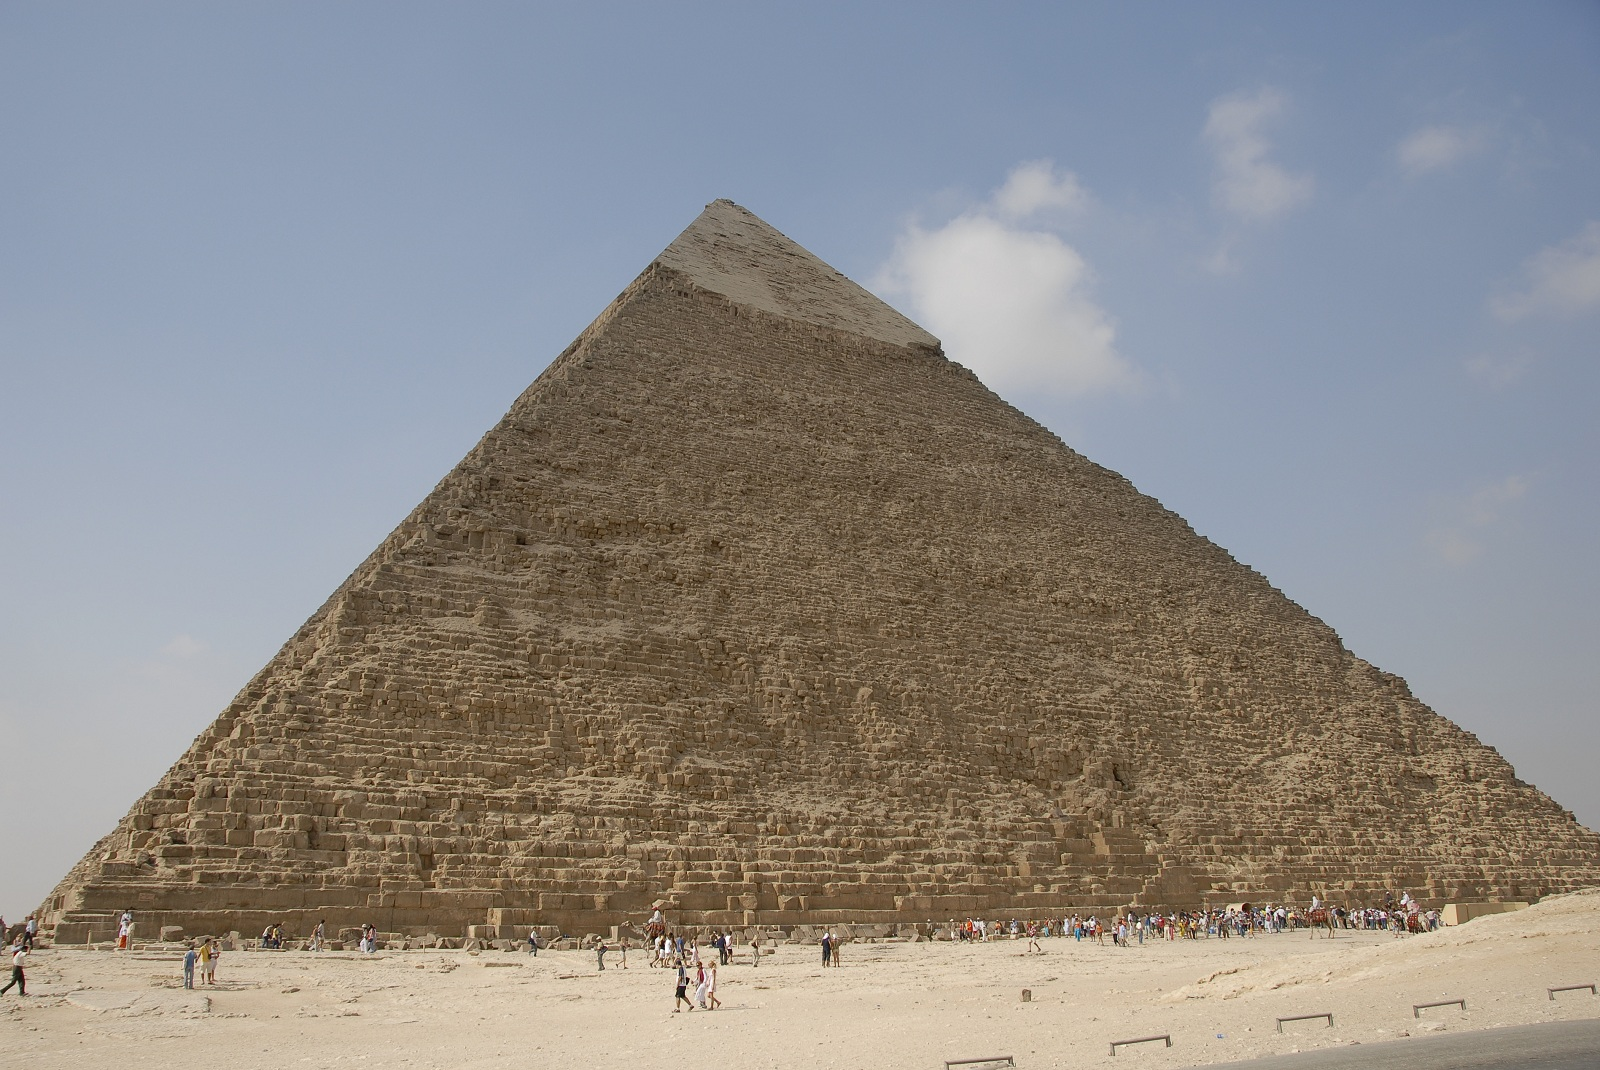 egyptian pyramids and holiday Pyramids and nile cruise holiday from £989 including flights, ideal if you have only one week and want to cover all the egypt highlights and treasures.